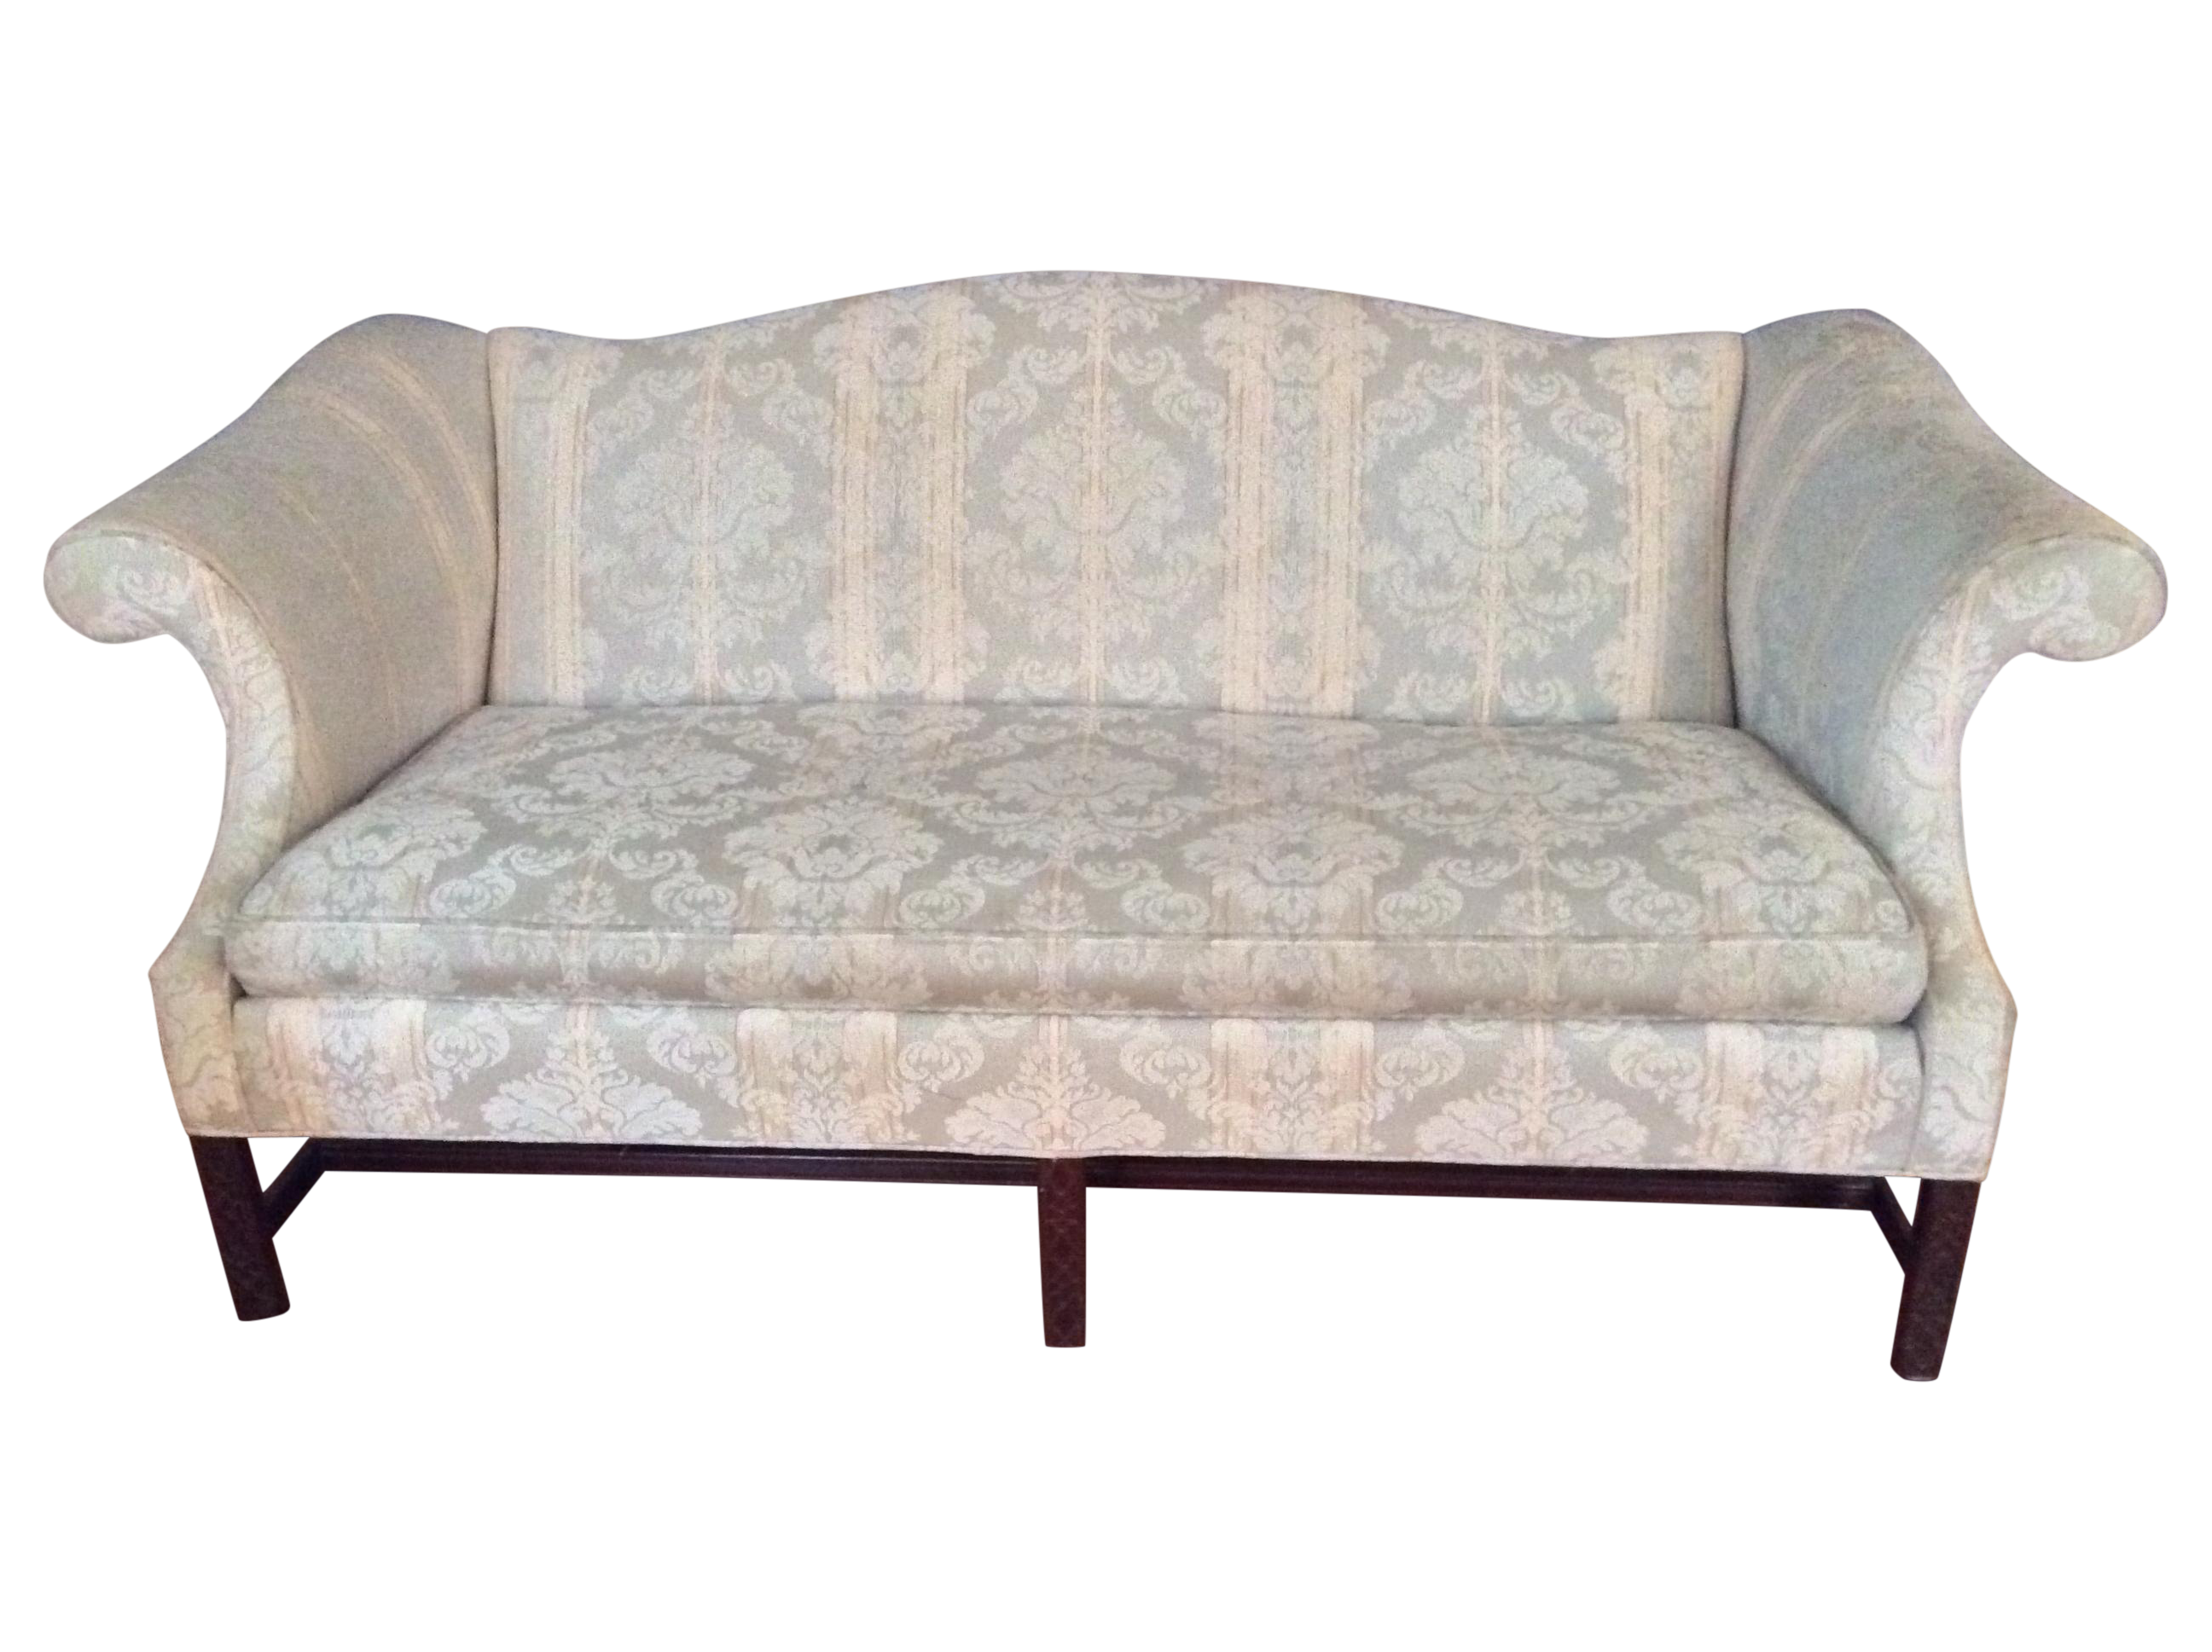 Chippendale sofaschippendale sofas - Image Of Chippendale Camelback Sofa